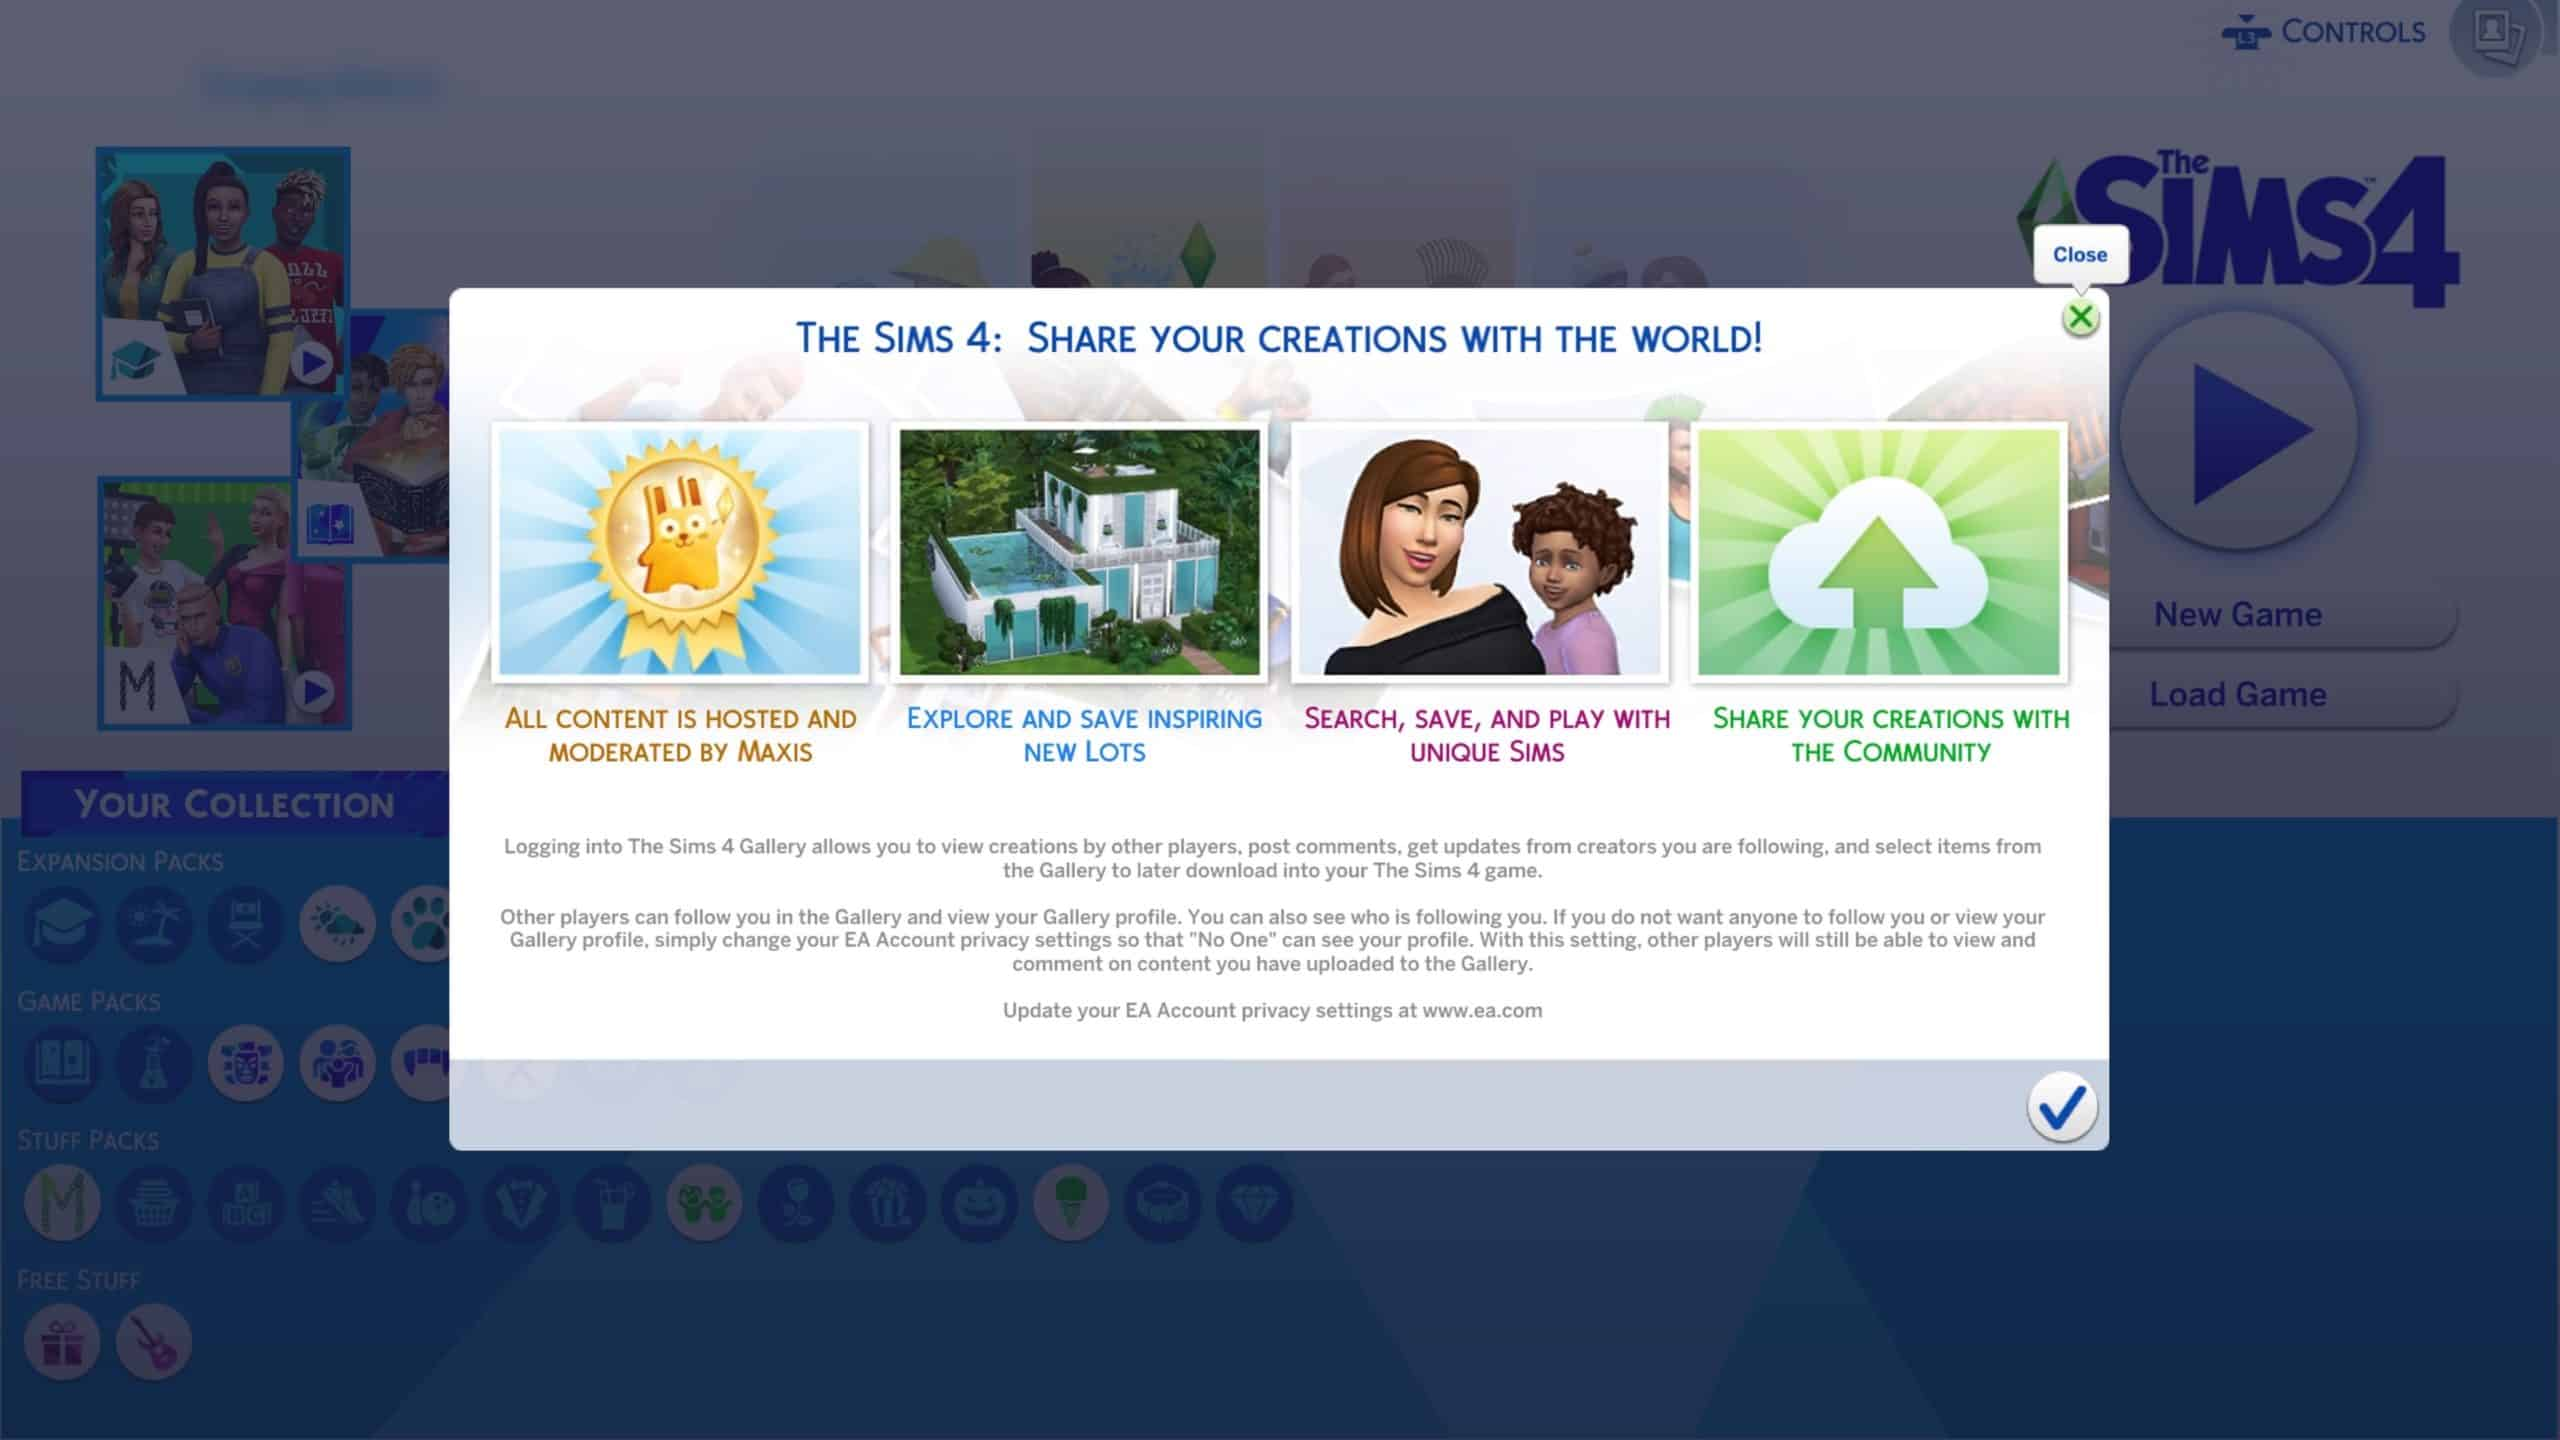 The Sims 4 Console: Welcome to the Gallery